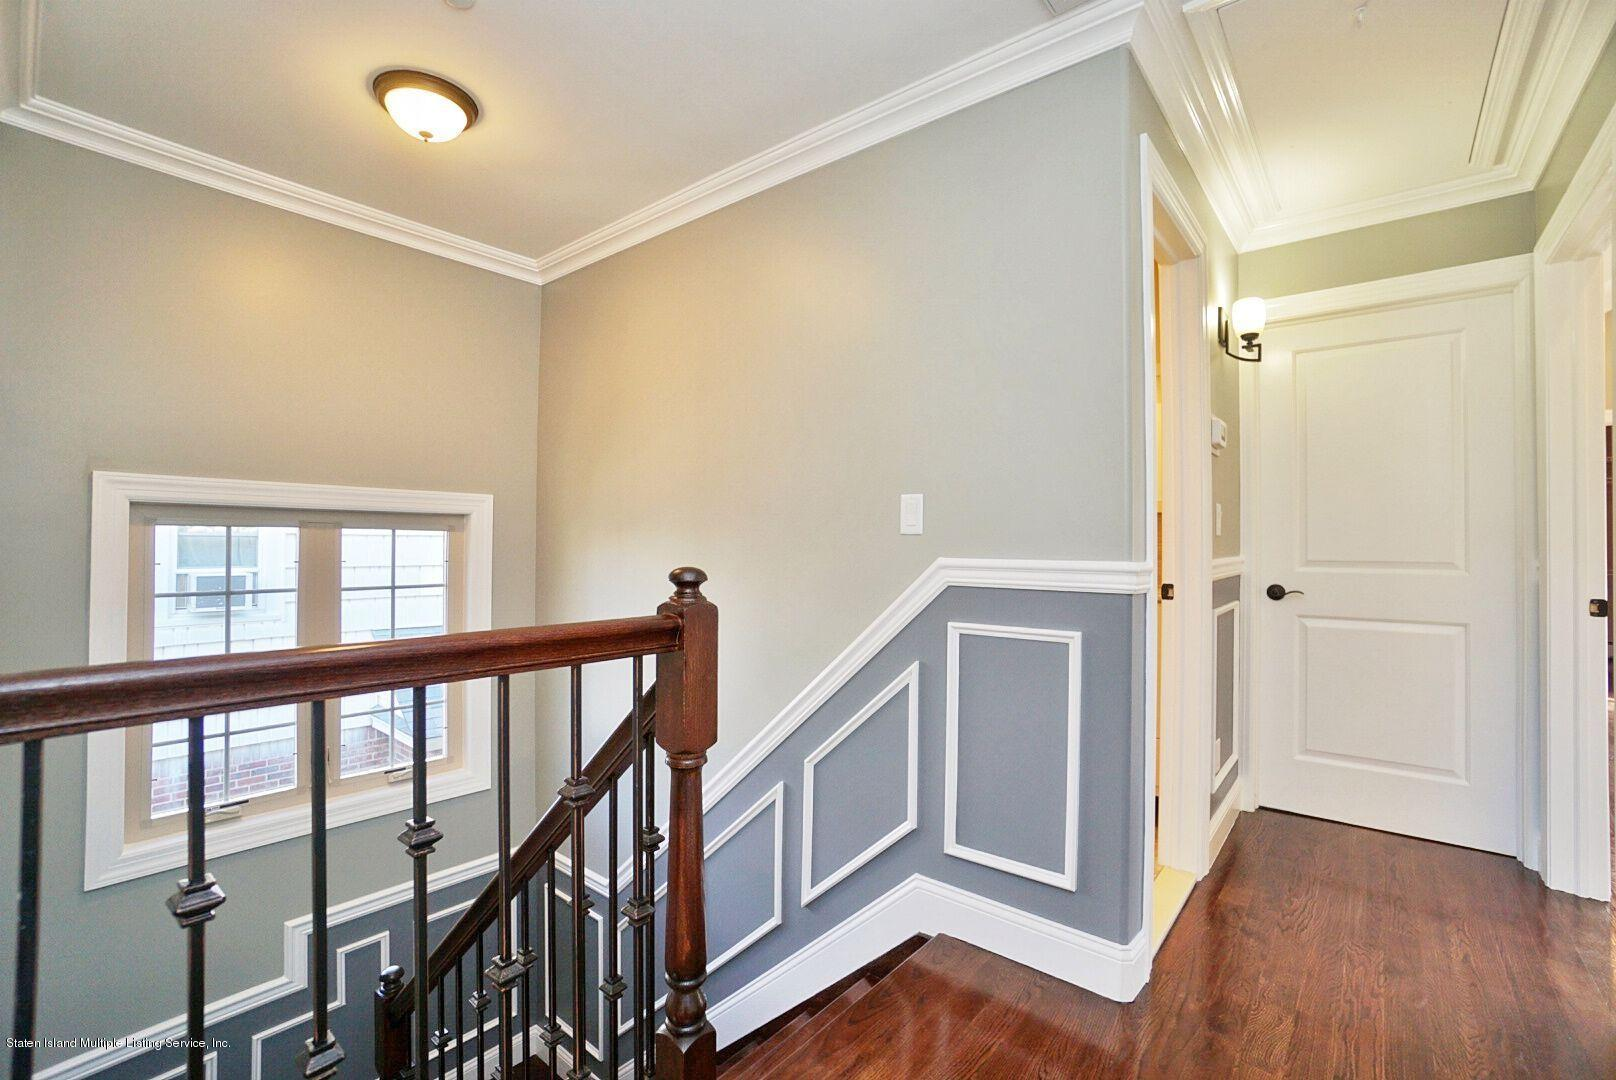 Single Family - Detached 165 Woolley Avenue  Staten Island, NY 10314, MLS-1128875-35